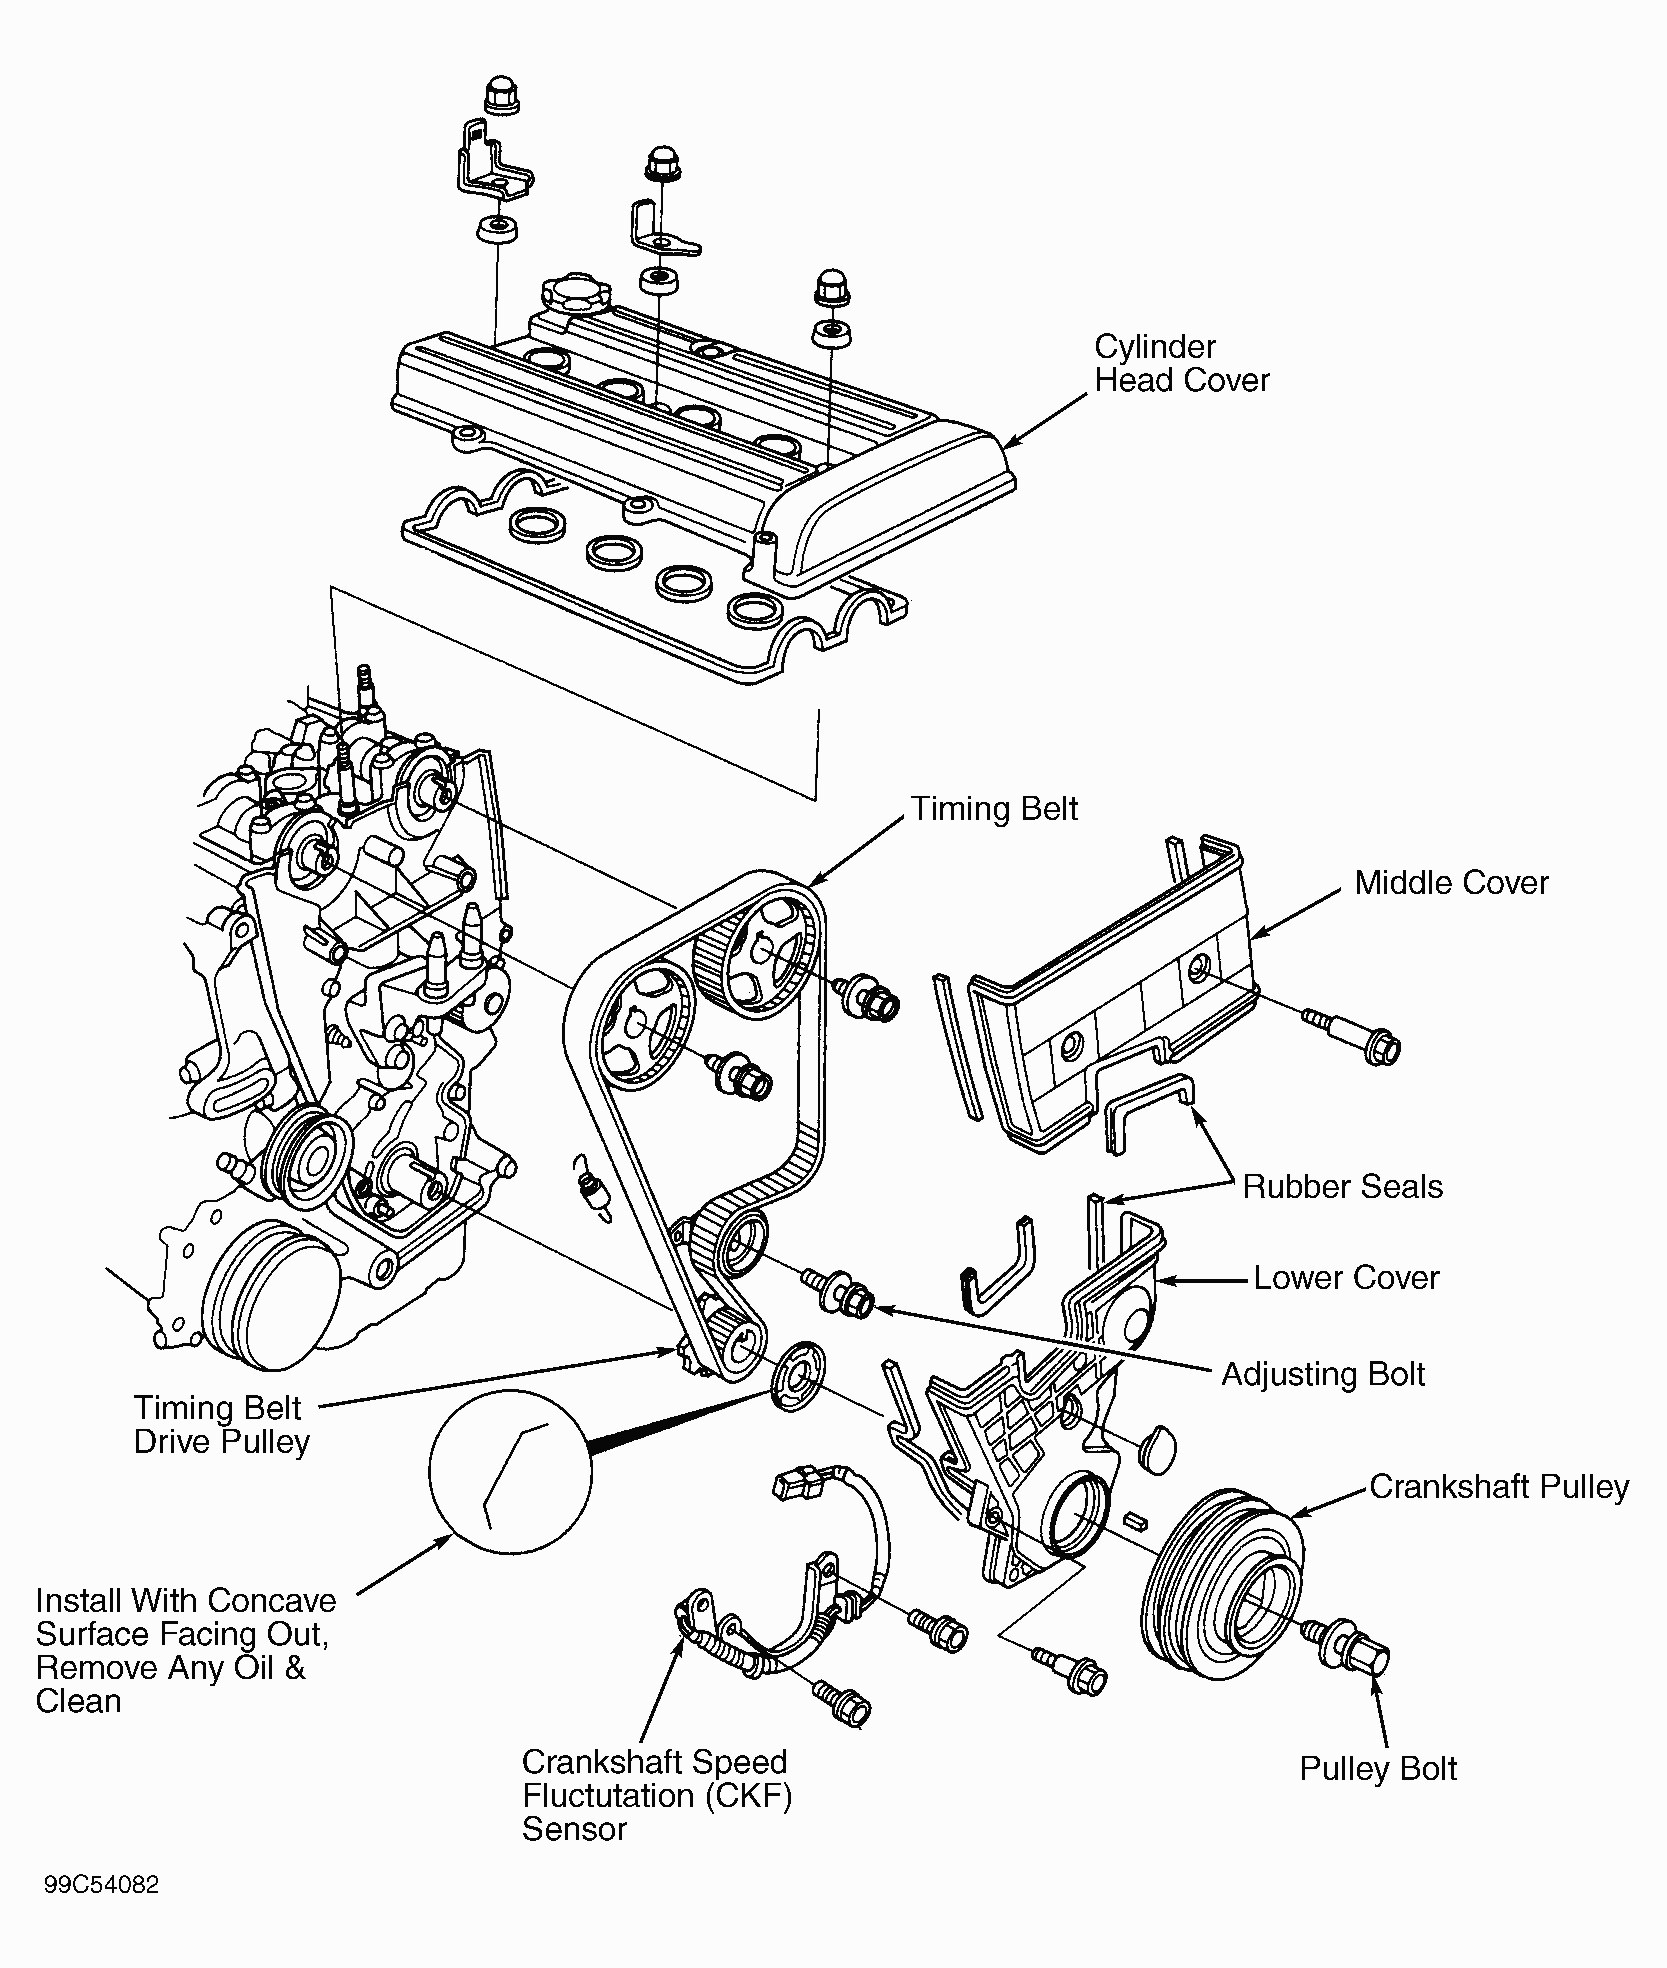 Honda Crv Engine Parts Diagram